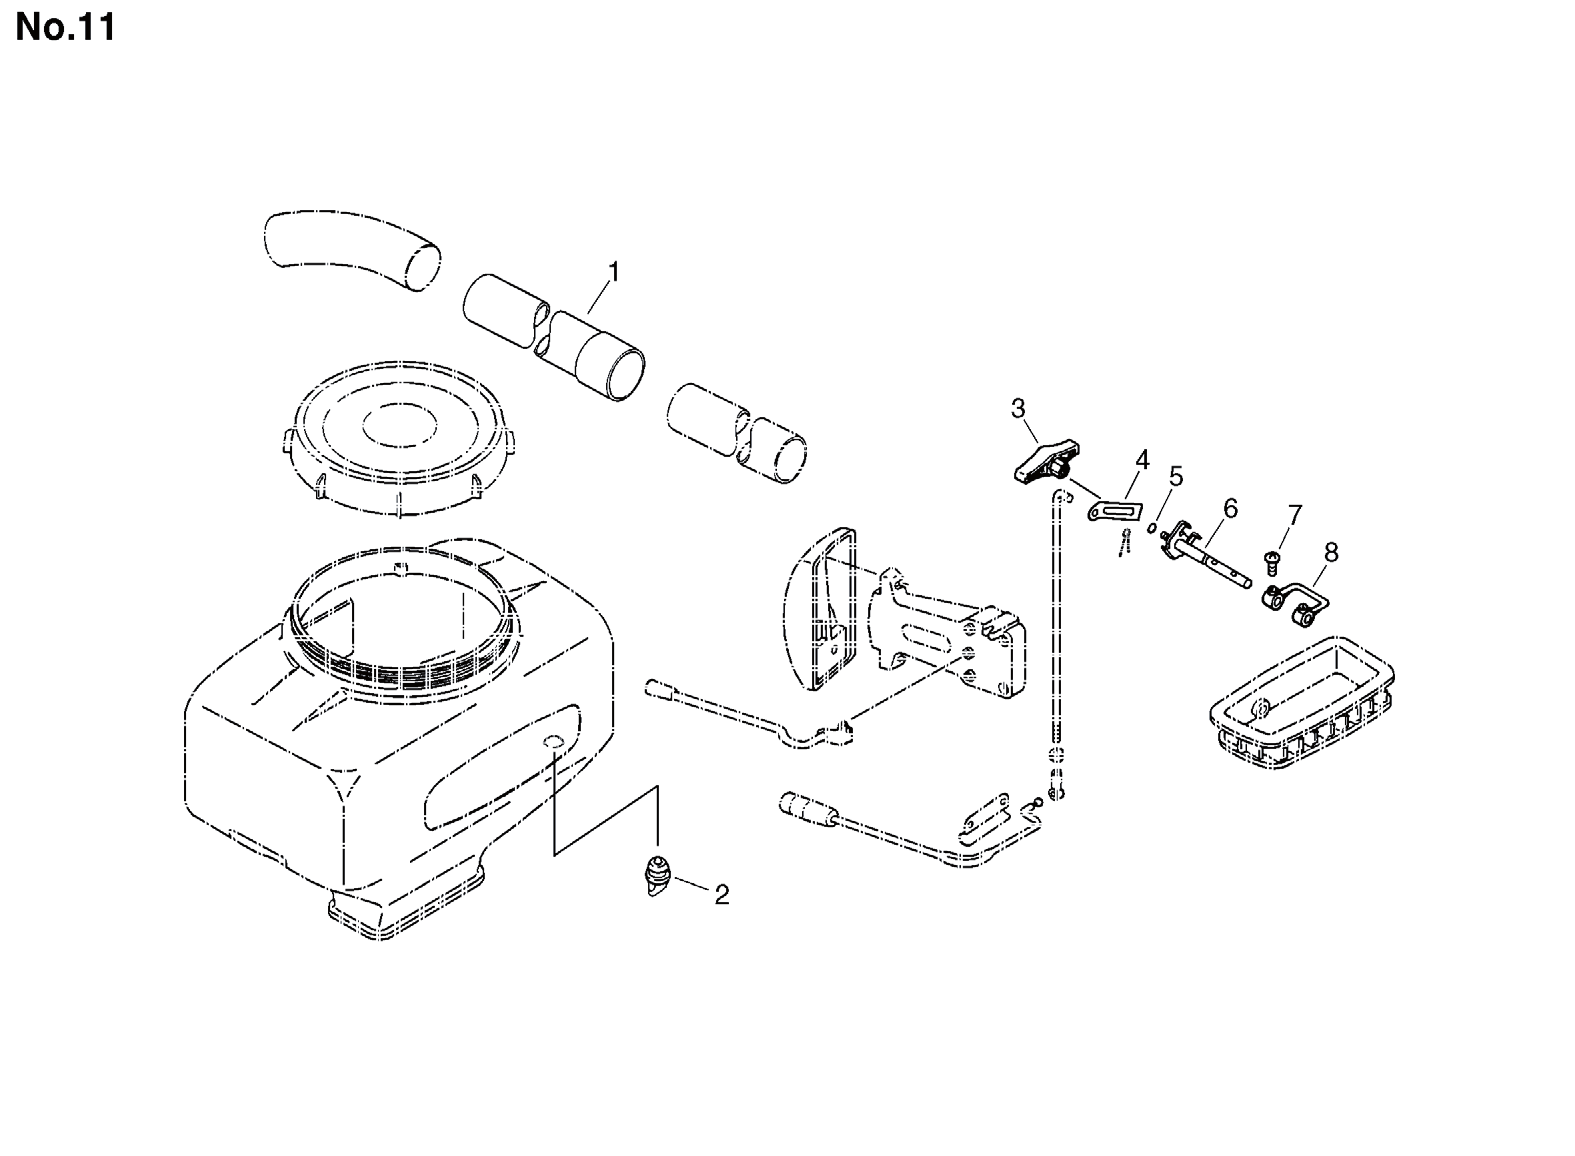 Group:Duster/Mist Blowers Model:DM-4610(SrNr 004334 and before) Section:Dust Attachment(DMAD-4610)-2 Group:Duster/Mist Blowers Model:DM-4610(SrNr 004334 and before) Section:Air Cleaner, Fuel Tank 4